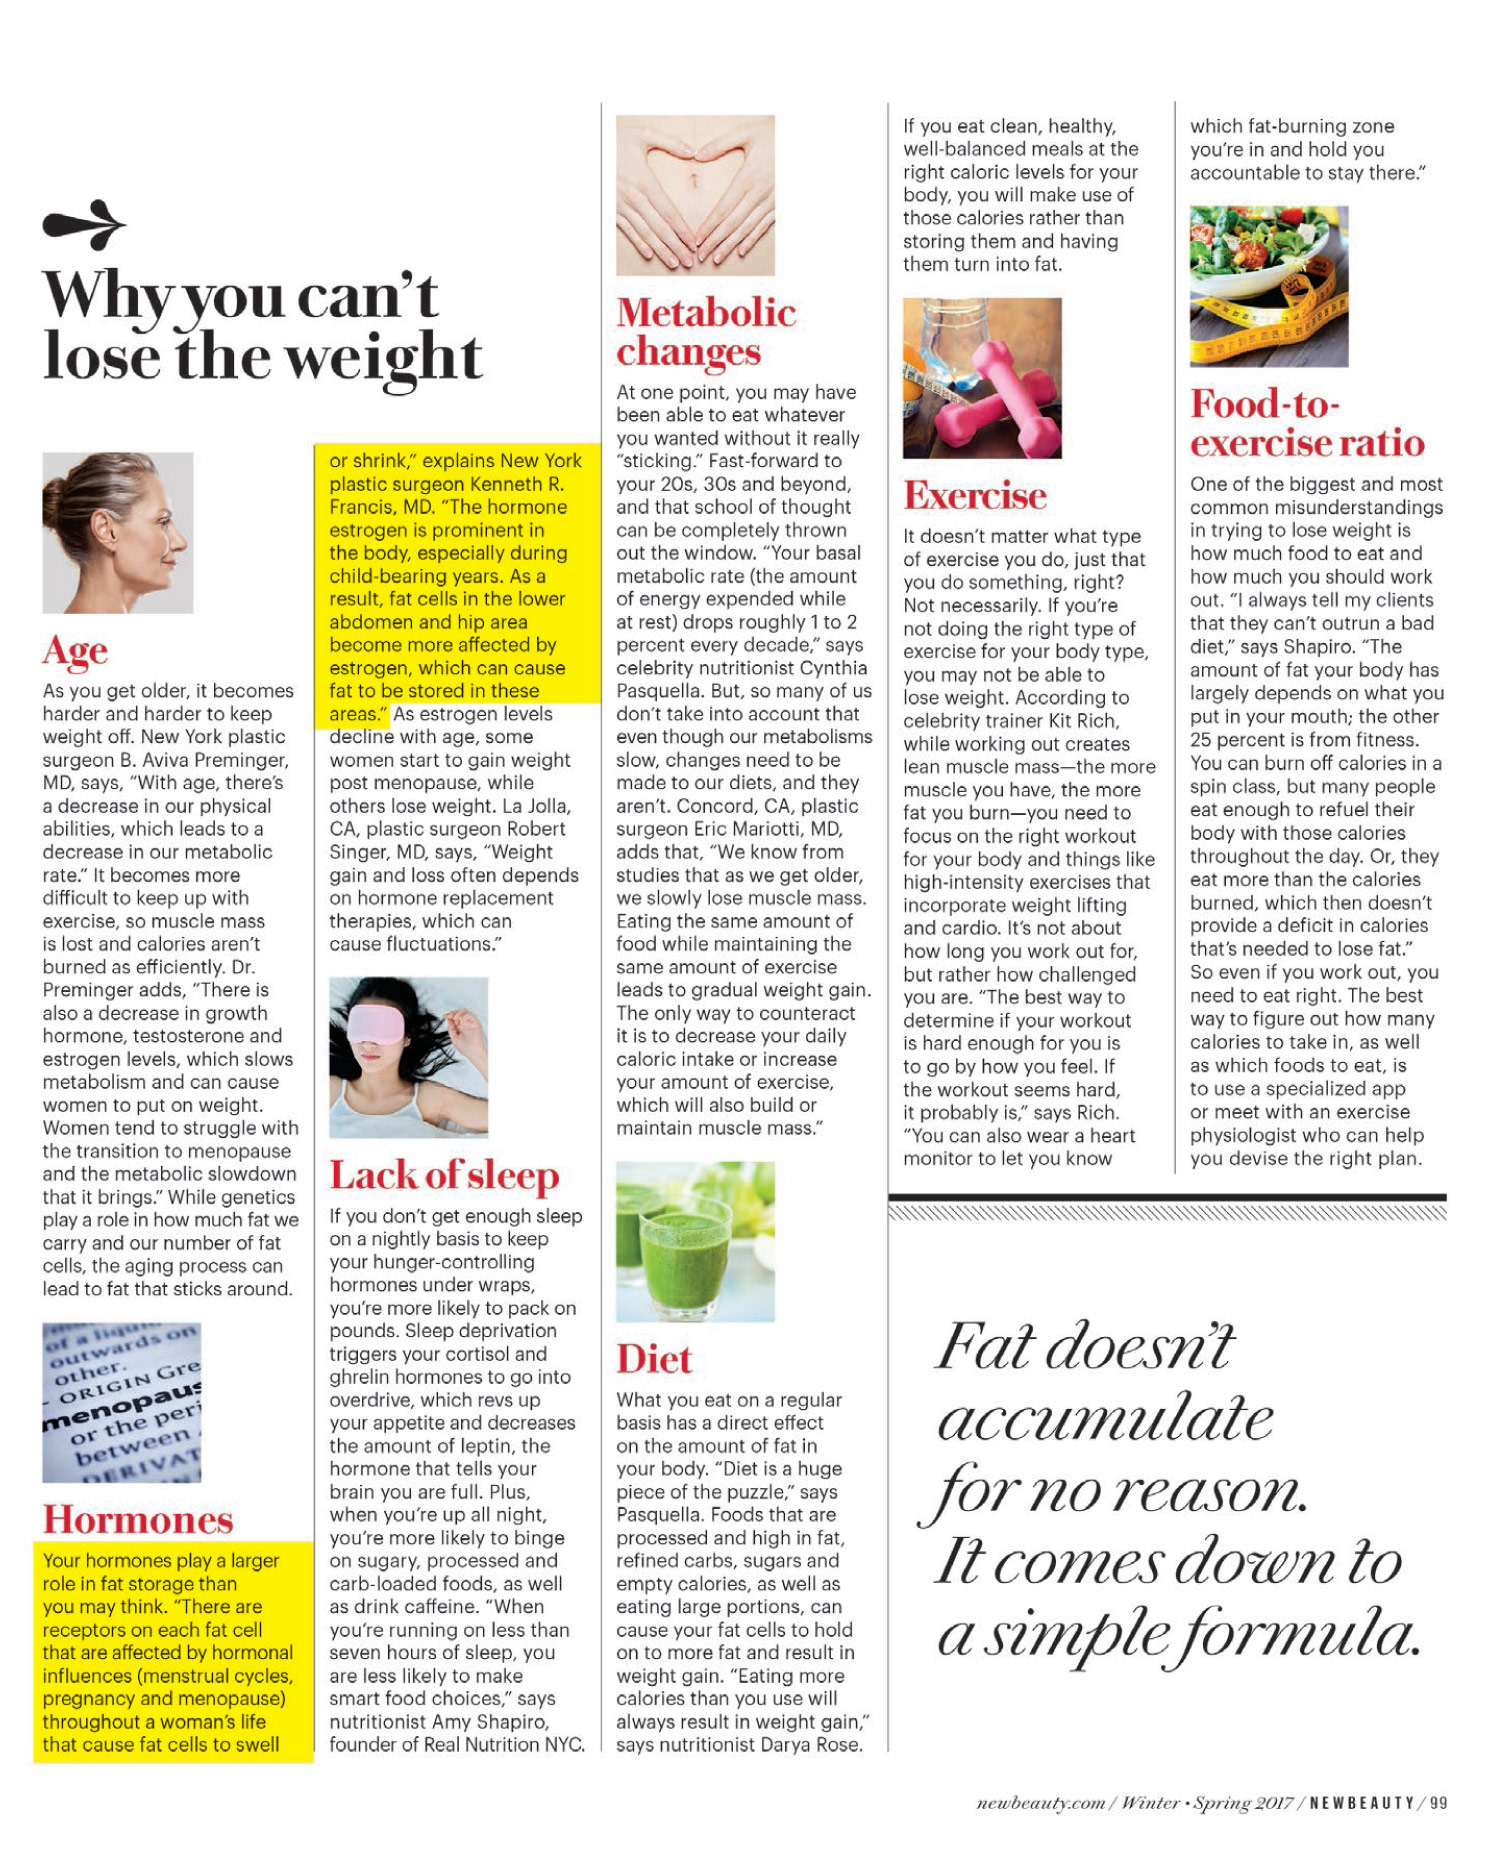 Dr. Francis is featured in this article of New Beauty January issue 2